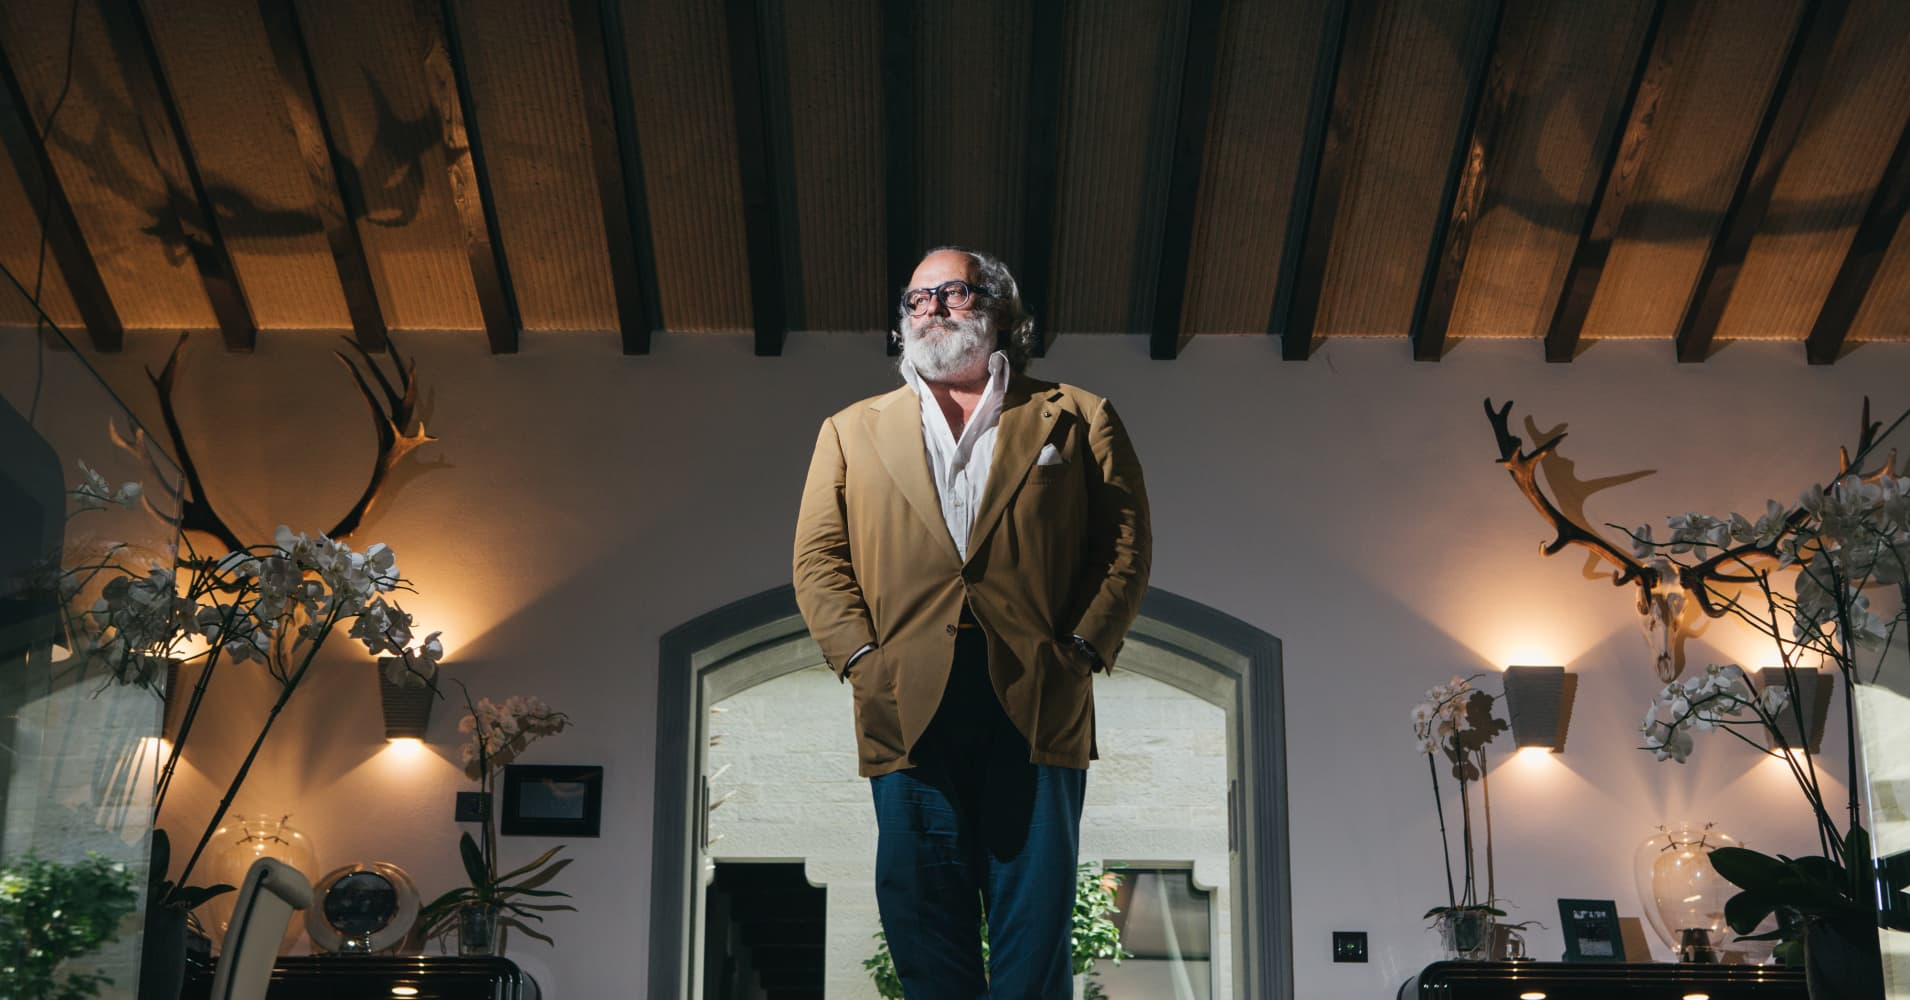 Stefano Ricci, the luxury menswear designer, at his castle in the Tuscan hills in Firenzuola, Italy, Aug. 3, 2017. Over four decades, Stefano Ricci's label has come to occupy a unique place in the fashion firmament, outfitting everyone from Kremlin power brokers and Middle Eastern oil scions to celebrities and western leaders. (Majlend Bramo/The New York Times)